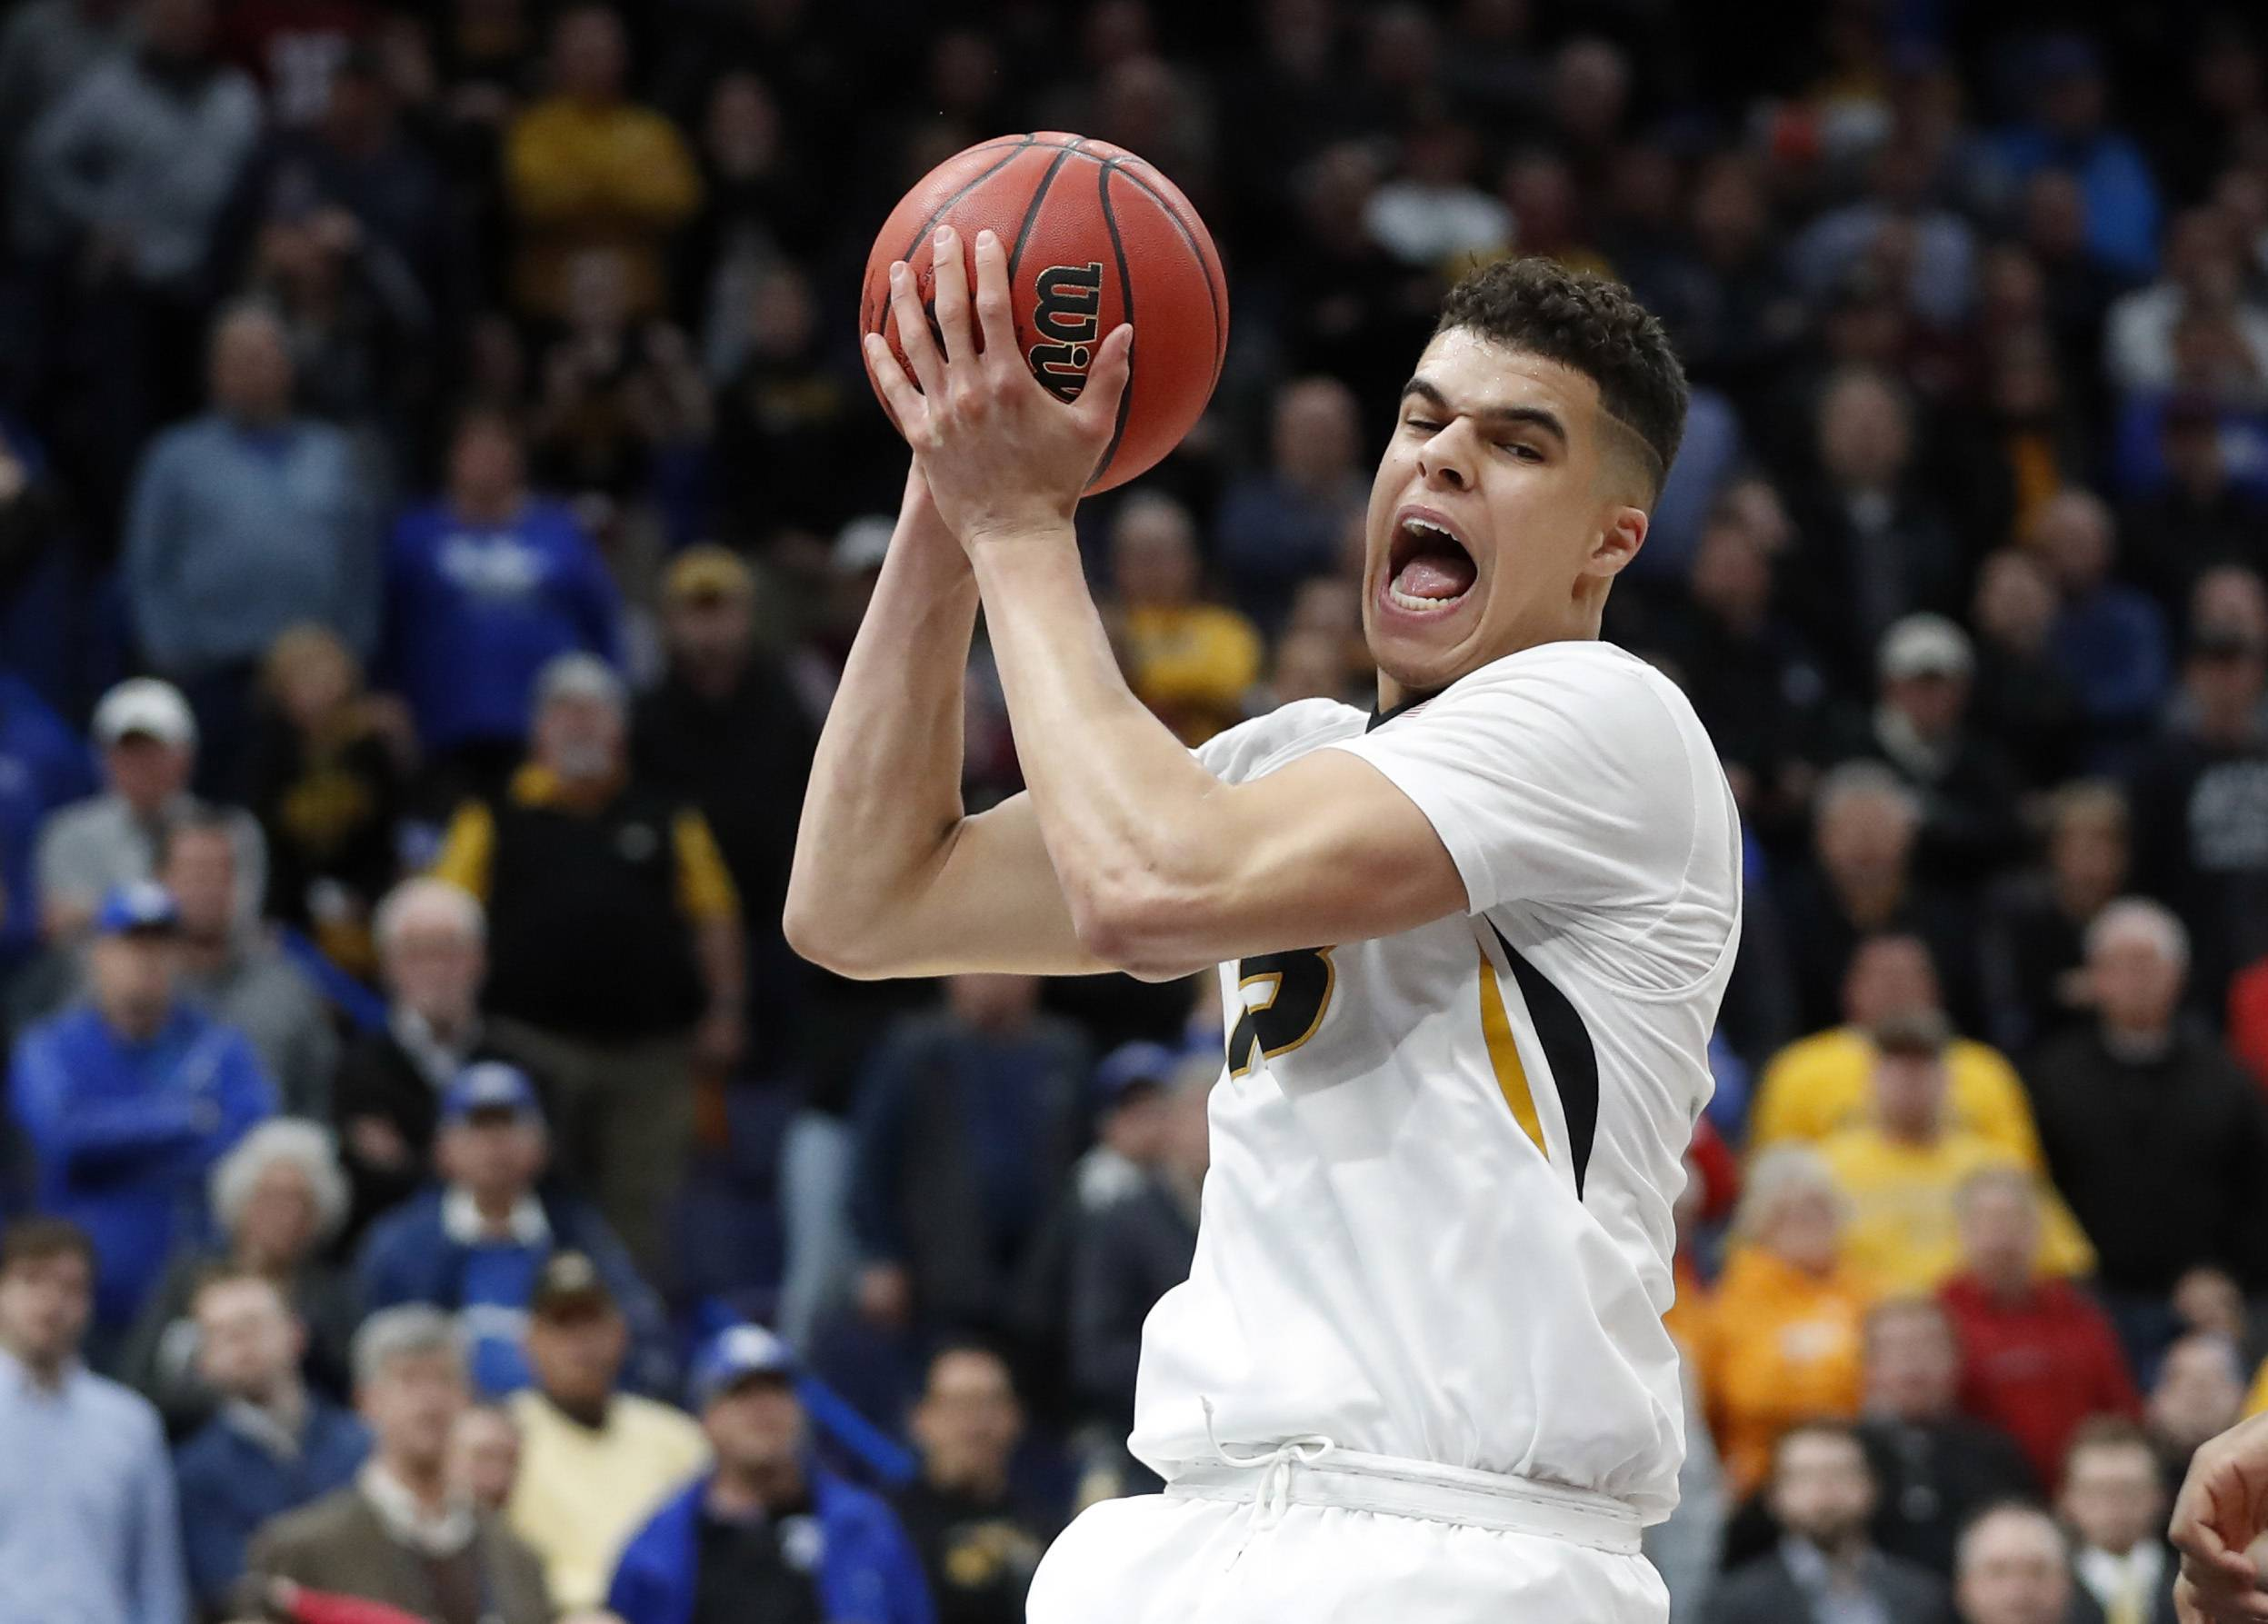 FILE - In this March 8, 2018, file photo, Missouri's Michael Porter Jr. pulls down a rebound during the second half in an NCAA college basketball game against Georgia at the Southeastern Conference tournament, in St. Louis. Michael Porter Jr. played in three games in college because of back problems, but his talent has long been considered more than NBA-ready. He is the epitome of high-risk, high-reward in this draft. (AP Photo/Jeff Roberson, File)